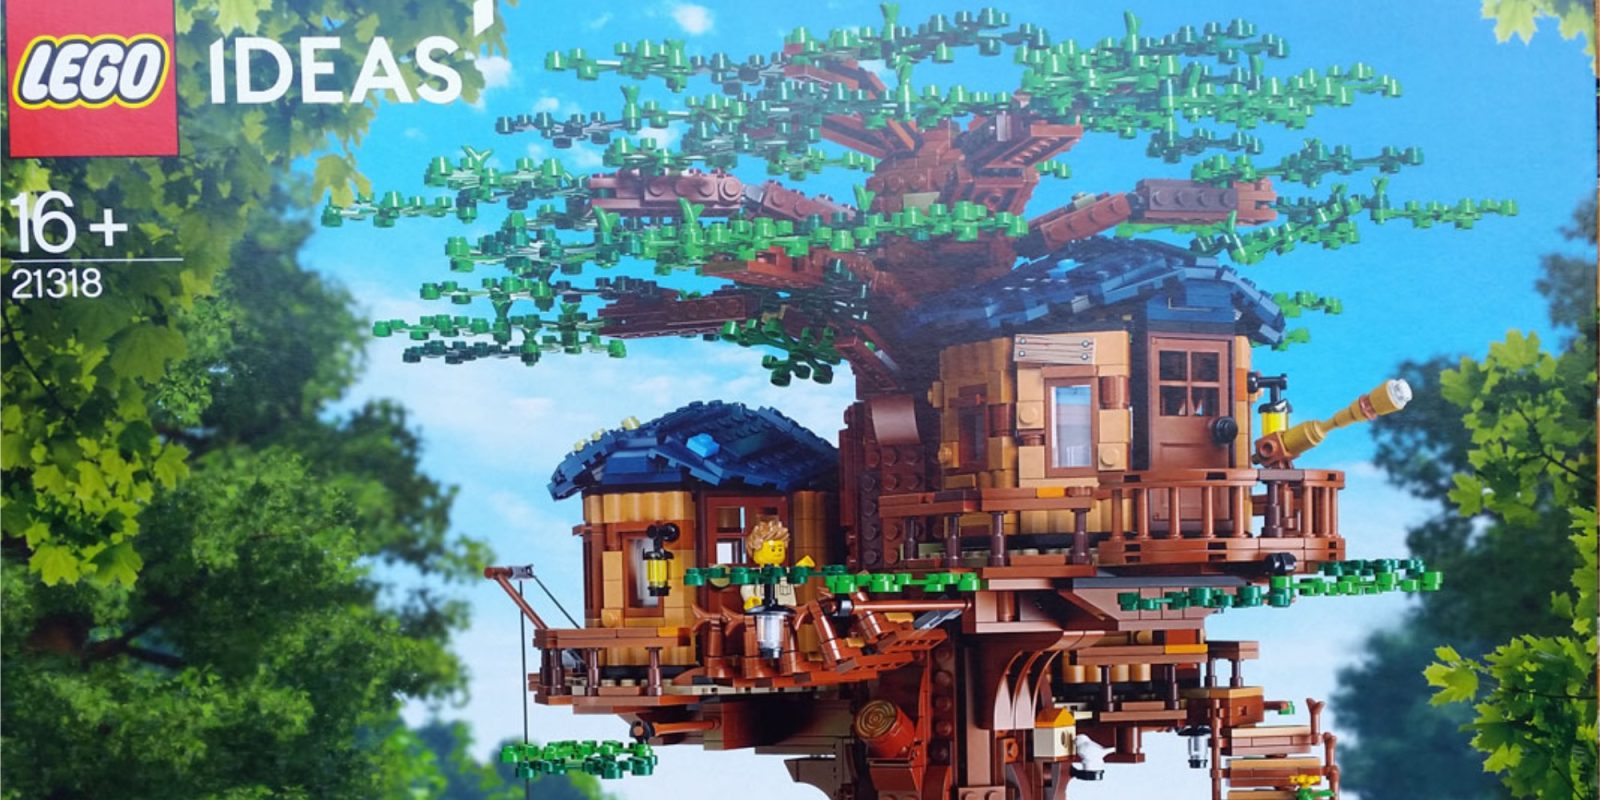 Get a first look at LEGO's 3,000-piece Treehouse, the largest Ideas kit yet